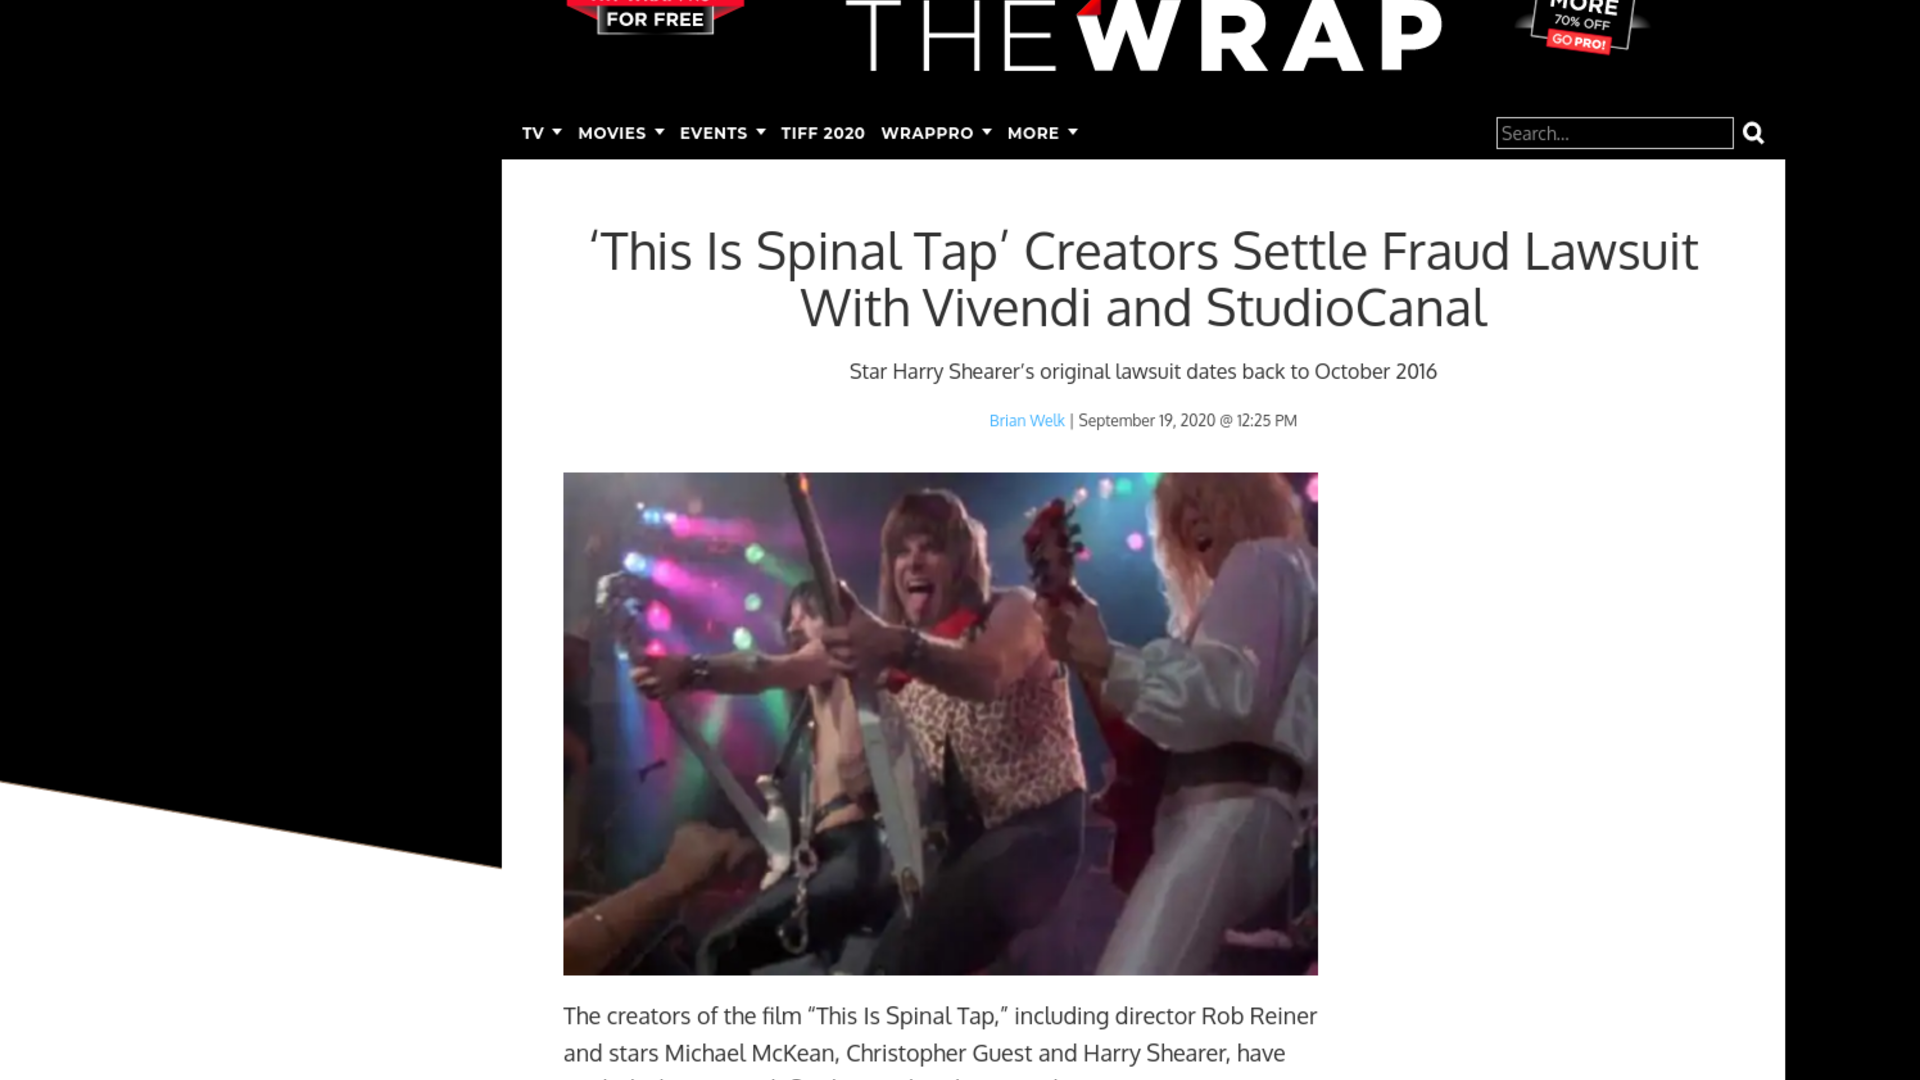 Fairness Rocks News 'This Is Spinal Tap' Creators Settle Fraud Lawsuit With Vivendi and StudioCanal